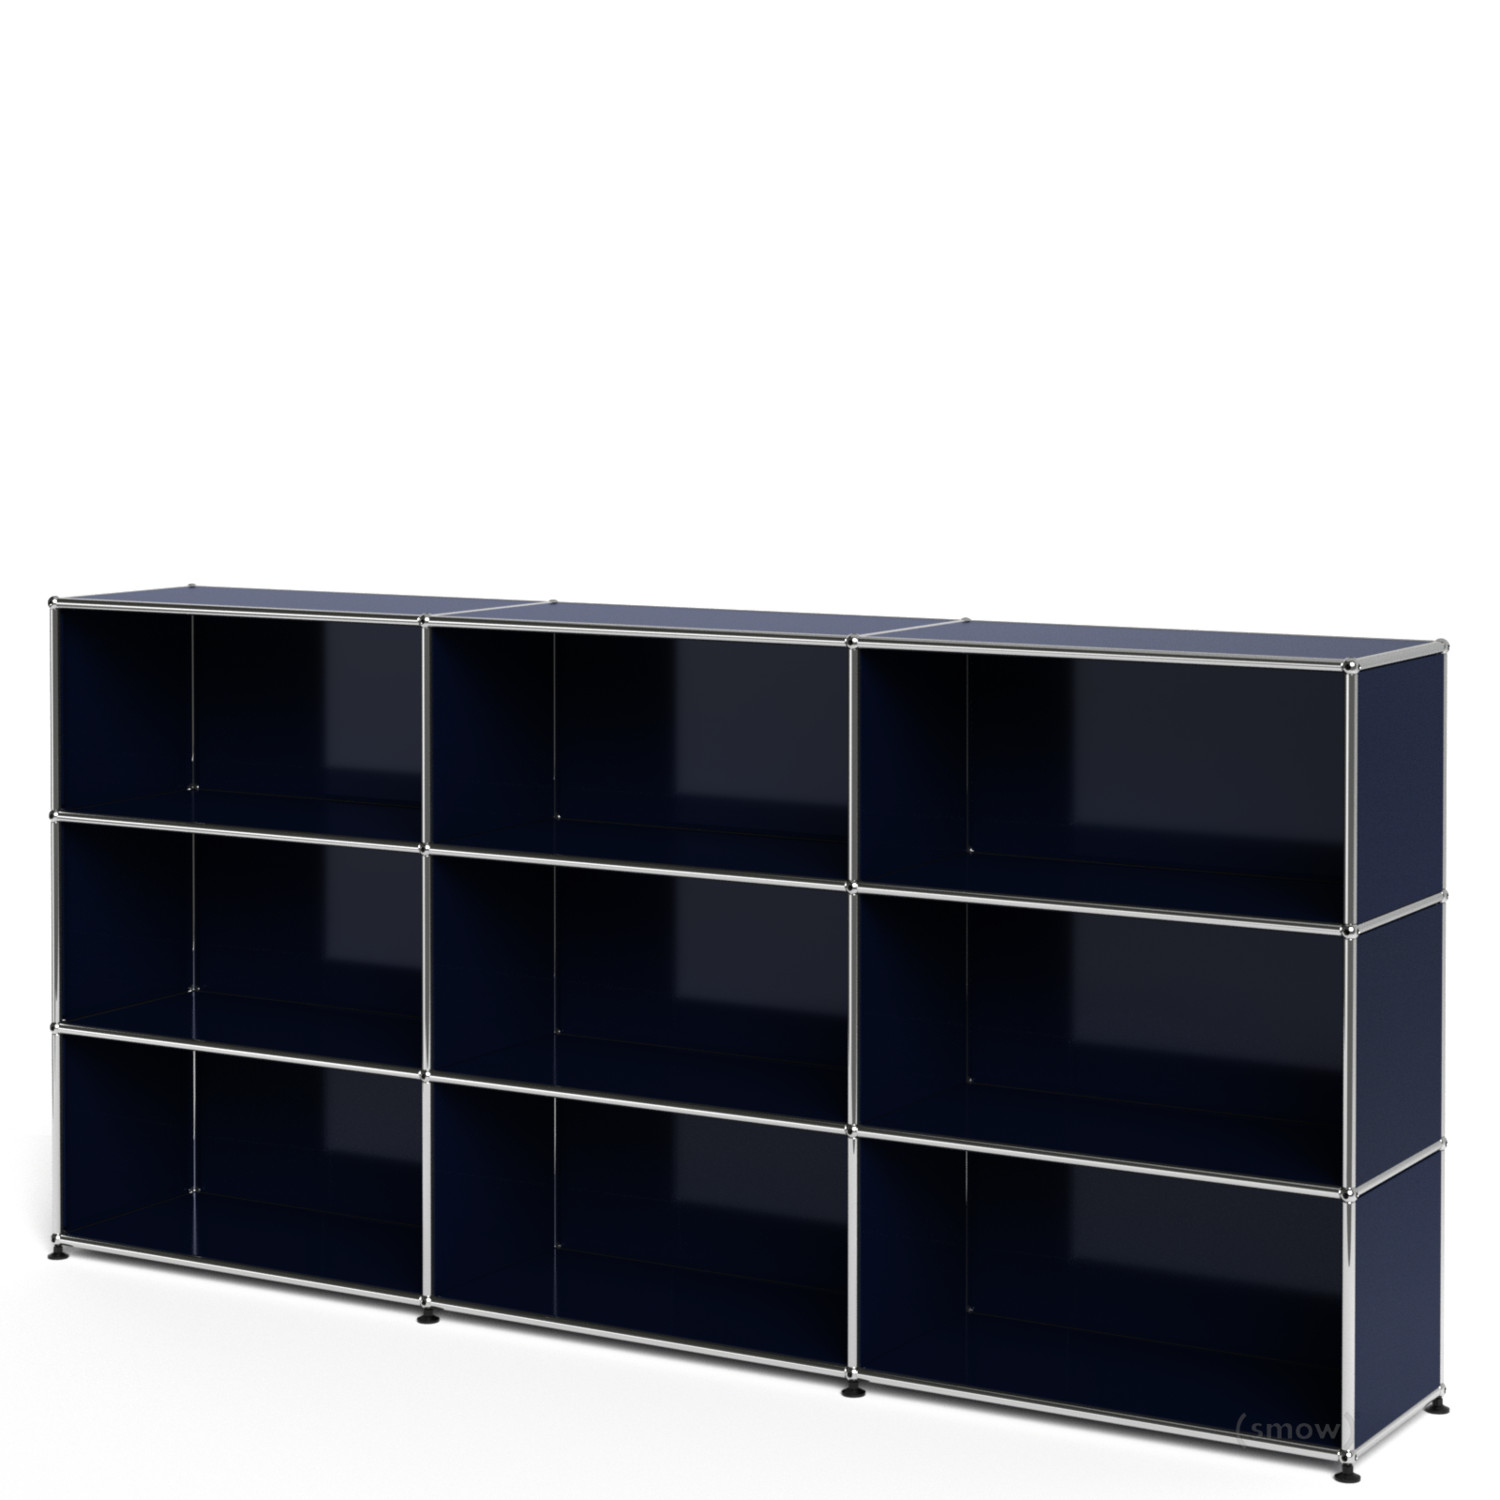 usm haller highboard xl individualisierbar von fritz haller paul sch rer designerm bel von. Black Bedroom Furniture Sets. Home Design Ideas